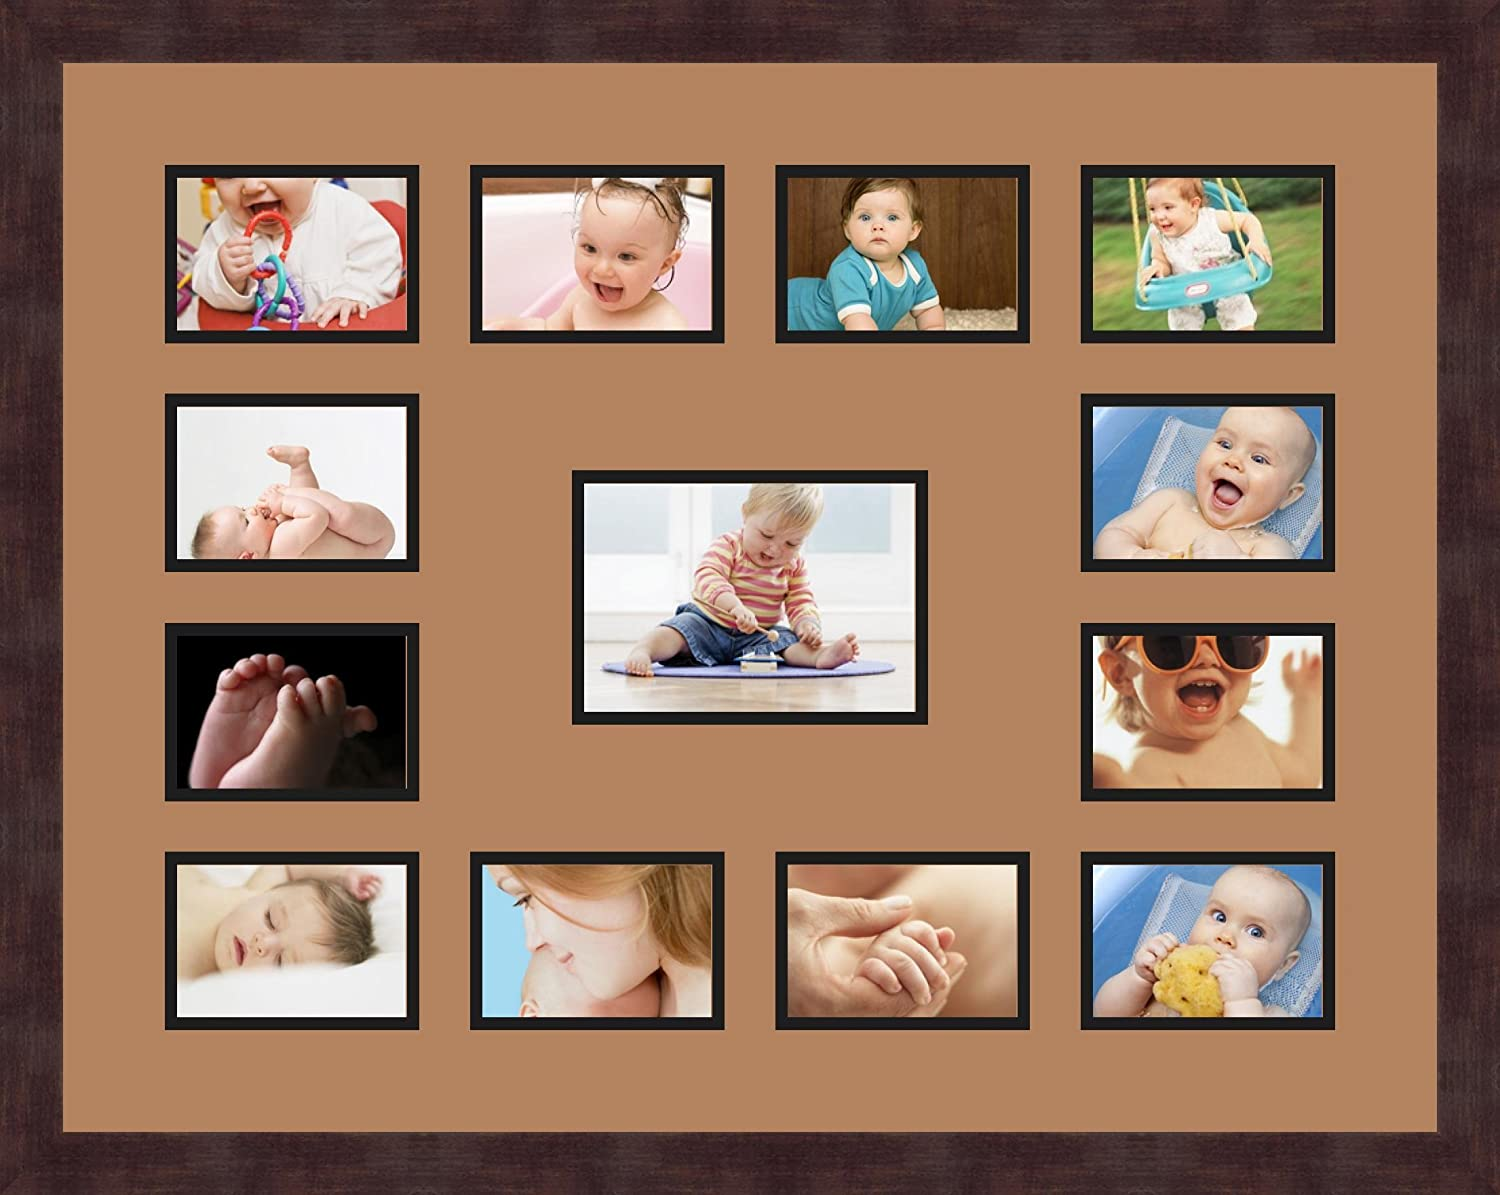 Art to Frames Double-Multimat-612-771//89-FRBW26061 Collage Frame Photo Mat Double Mat with 12-3.5x5 and 1-5x7 Openings and Espresso Frame